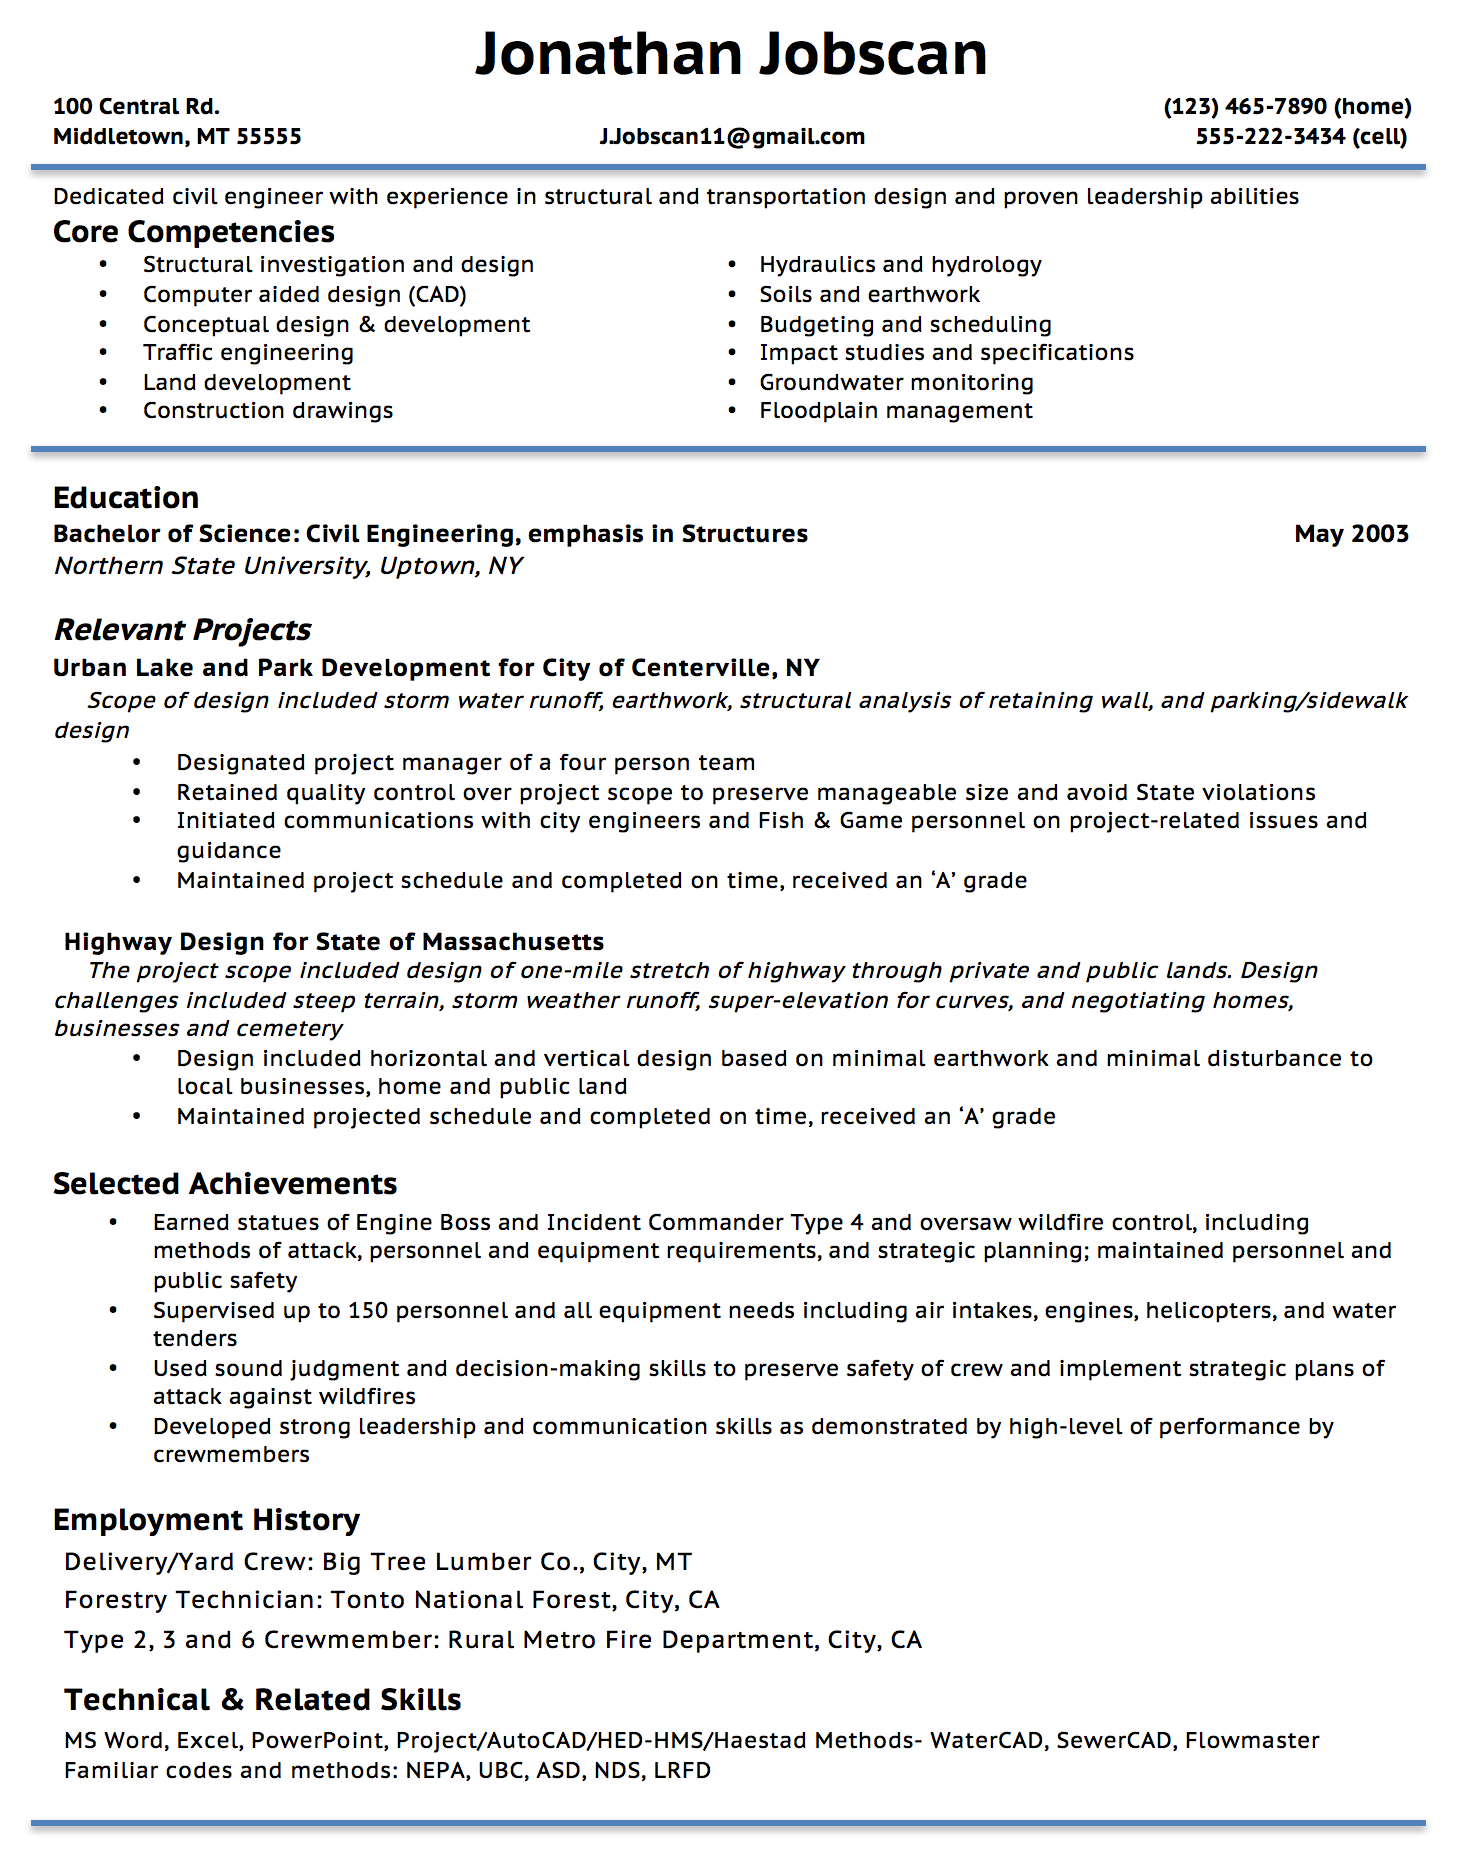 Opposenewapstandardsus  Outstanding Resume Writing Guide  Jobscan With Licious Example Of A Functional Resume Format With Easy On The Eye Resume Examples For College Students With Little Experience Also Resume Summary Of Skills In Addition Unique Name For Resume And Policy Analyst Resume As Well As Font On Resume Additionally Sales Associate Resume Samples From Jobscanco With Opposenewapstandardsus  Licious Resume Writing Guide  Jobscan With Easy On The Eye Example Of A Functional Resume Format And Outstanding Resume Examples For College Students With Little Experience Also Resume Summary Of Skills In Addition Unique Name For Resume From Jobscanco